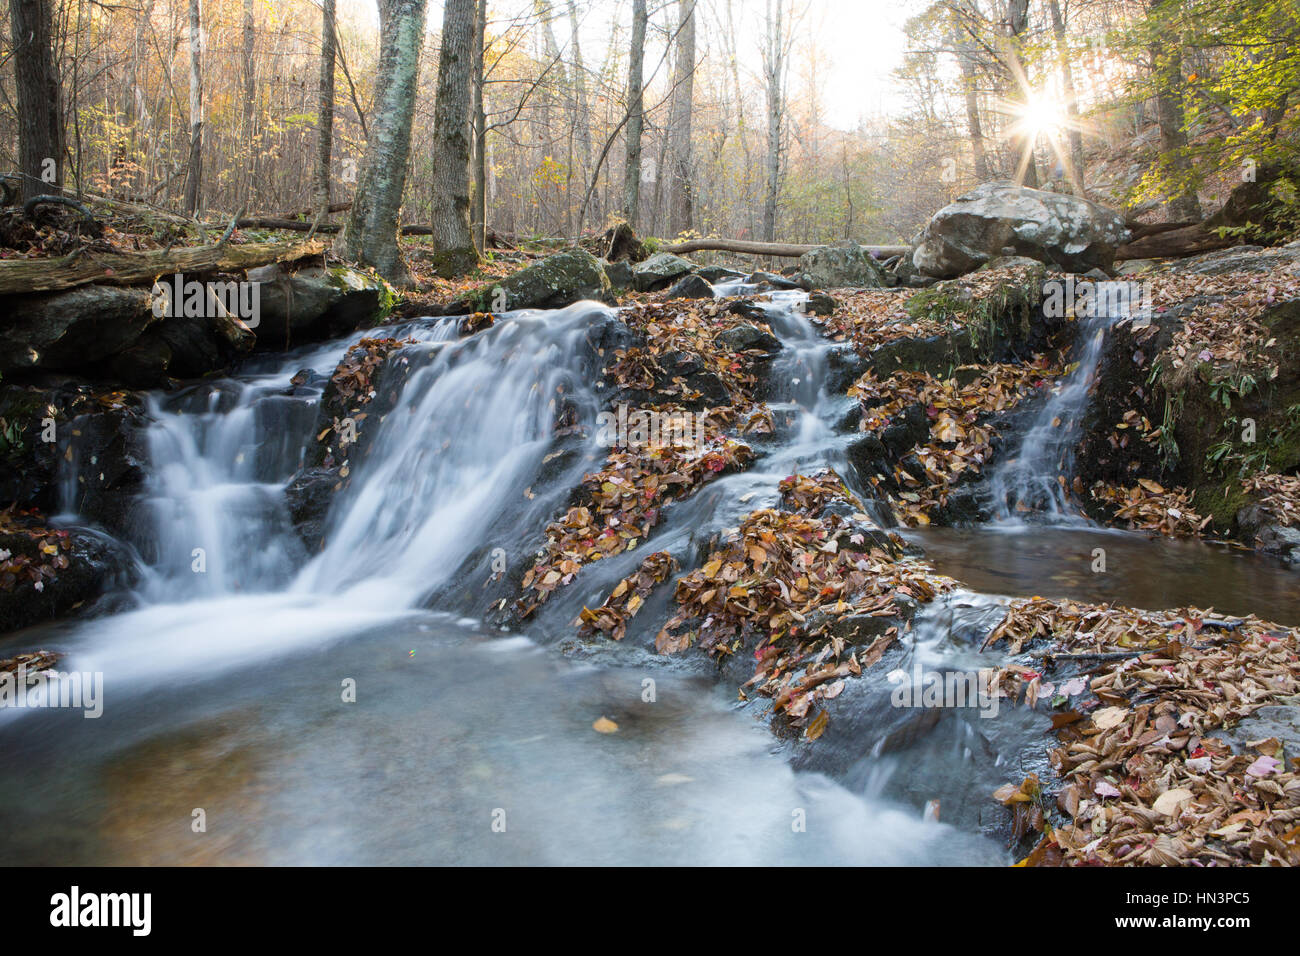 The sun bursts through colorful autumn foliage and a waterfall meanders around rocks along Dark Hollow Falls Hiking - Stock Image